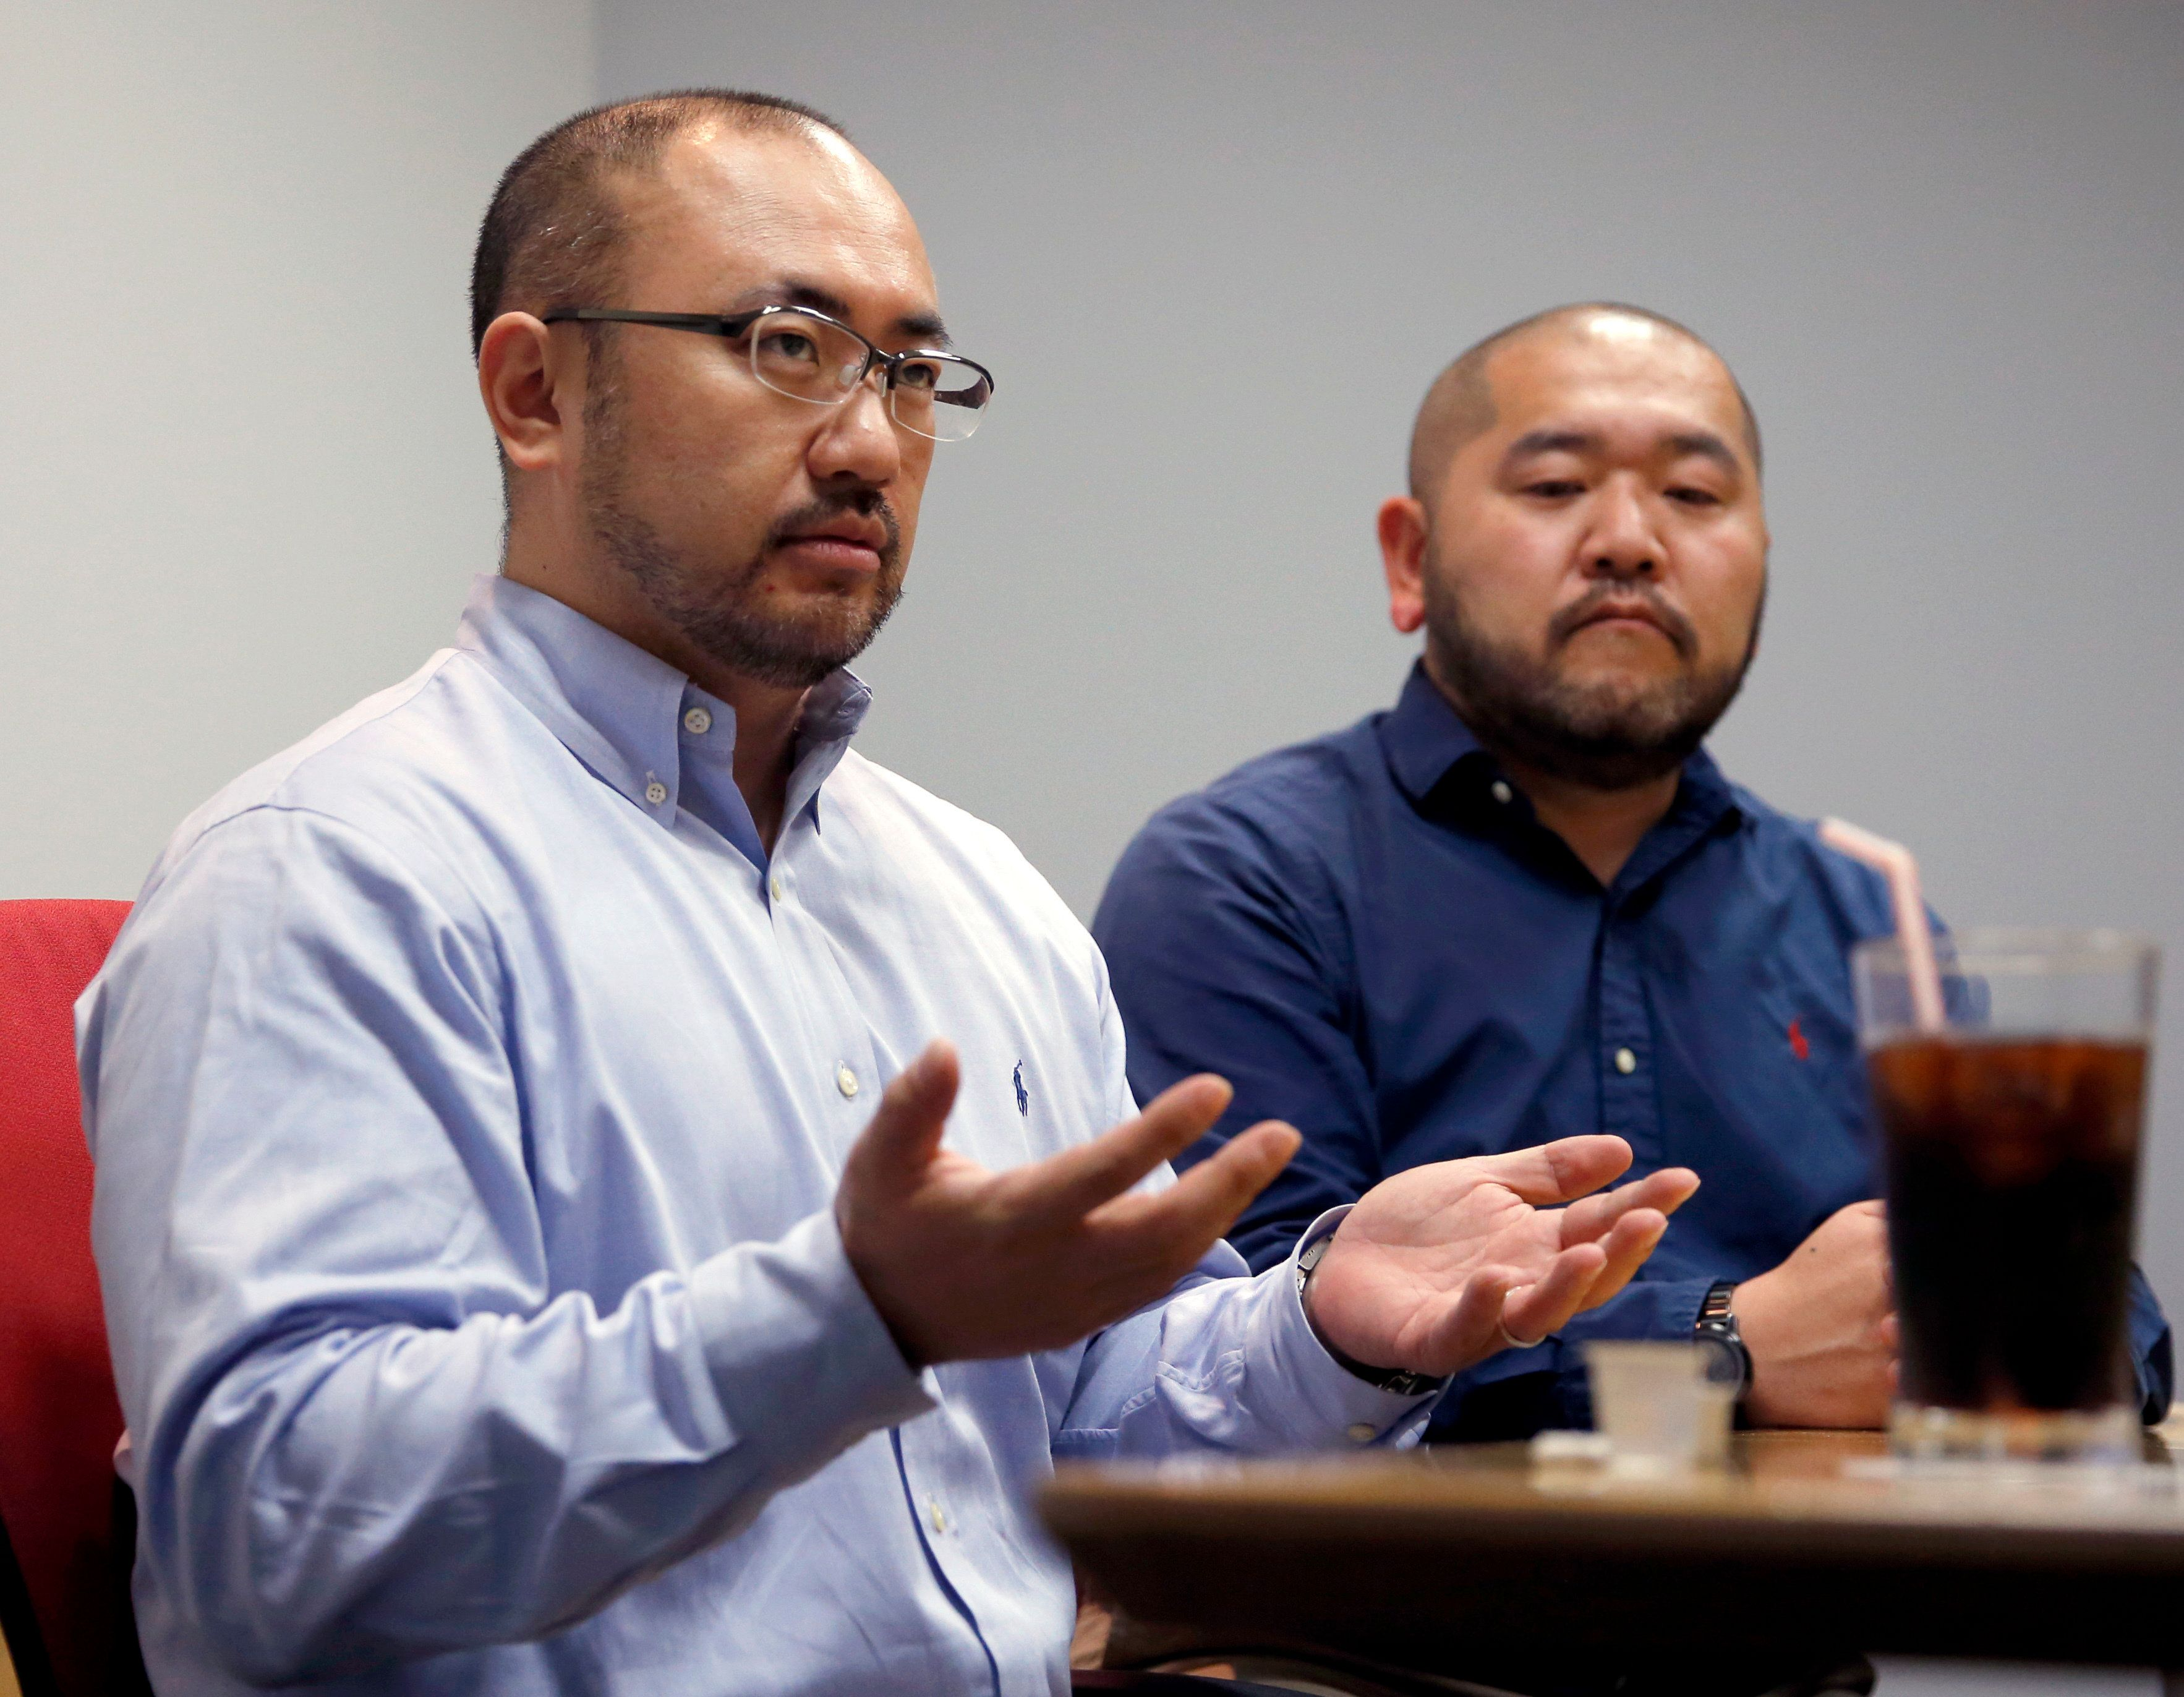 In this Jan. 28, 2019, photo, Kenji Aiba, left, speaks as his partner Ken Kozumi listens during an interview with The Associated Press in Tokyo. Kozumi and Aiba have held onto a marriage certificate they signed at their wedding party in 2013, anticipating that Japan would emulate other advanced nations and legalize same-sex unions. That day has yet to come, and legally they are just friends even though they've lived as a married couple for more than five years. On Thursday, Feb. 14, 2019, Valentine's Day, the couple is joining a dozen other same-sex couples in Japan's first lawsuits challenging the constitutionality of the country's rejection of same-sex marriage. (AP Photo/Toru Takahashi)